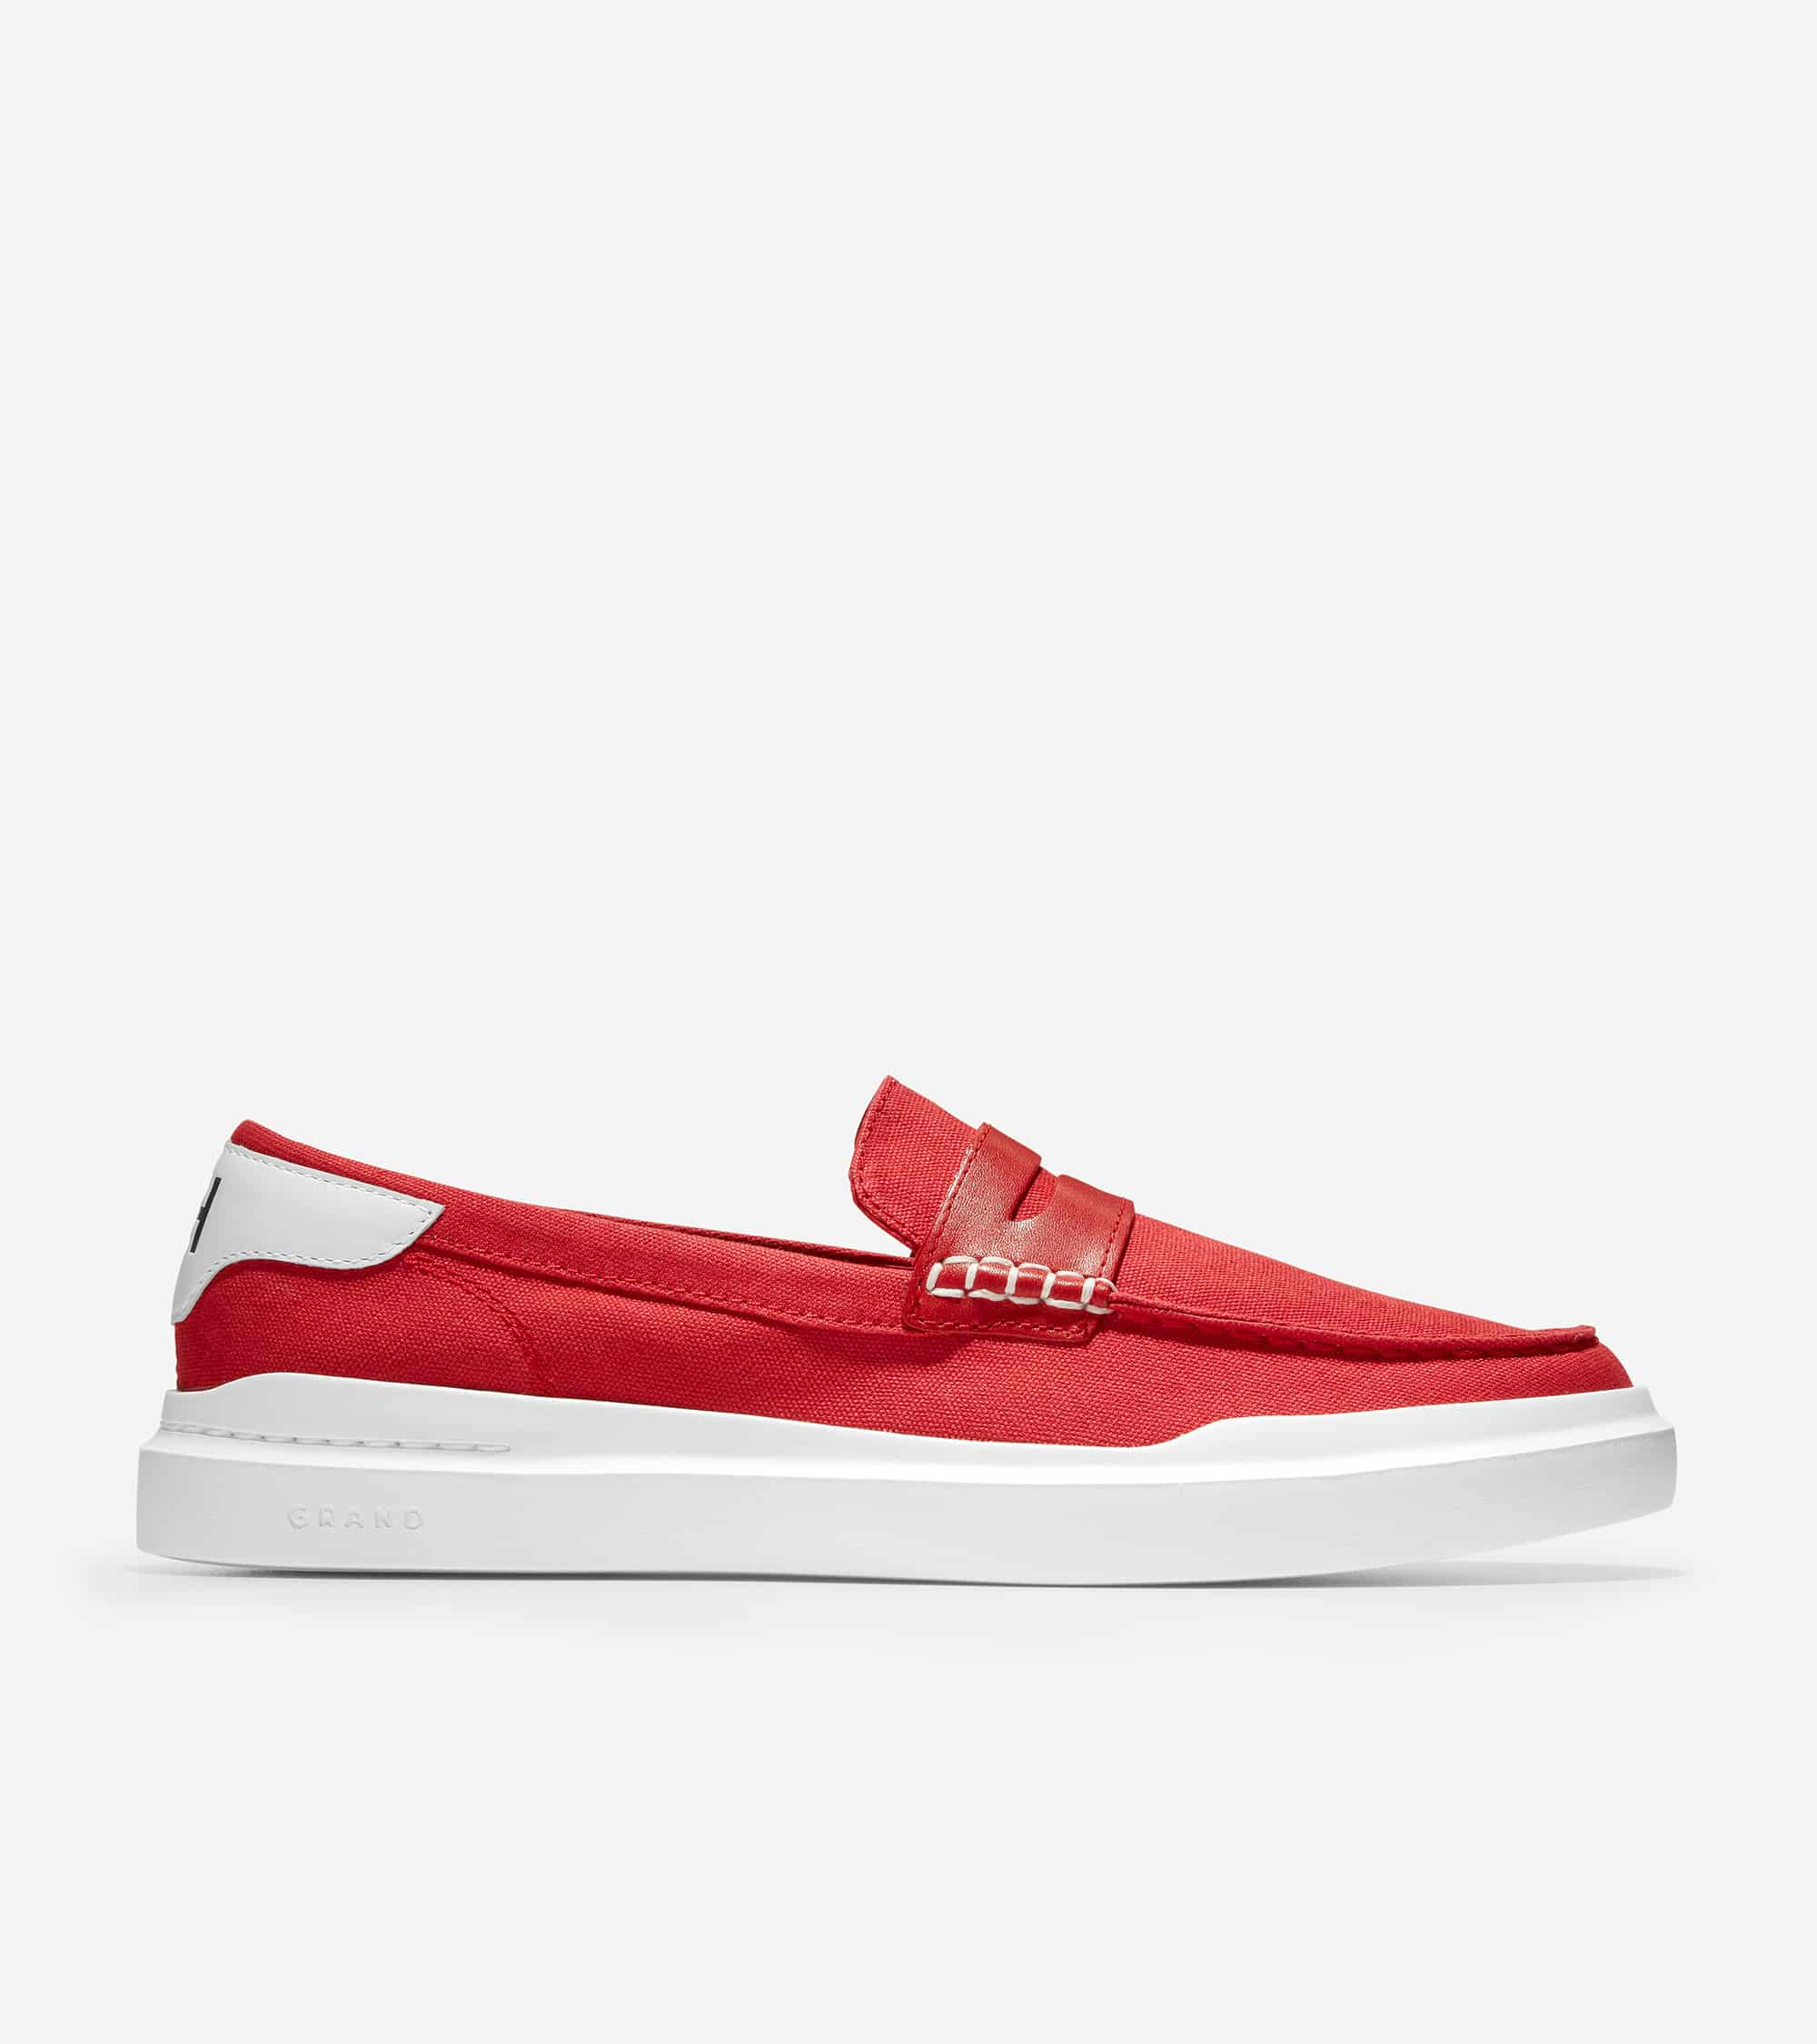 GRANDPRO RALLY CANVAS PENNY LOAFER TANGO RED CANVAS/OPTIC WHITE